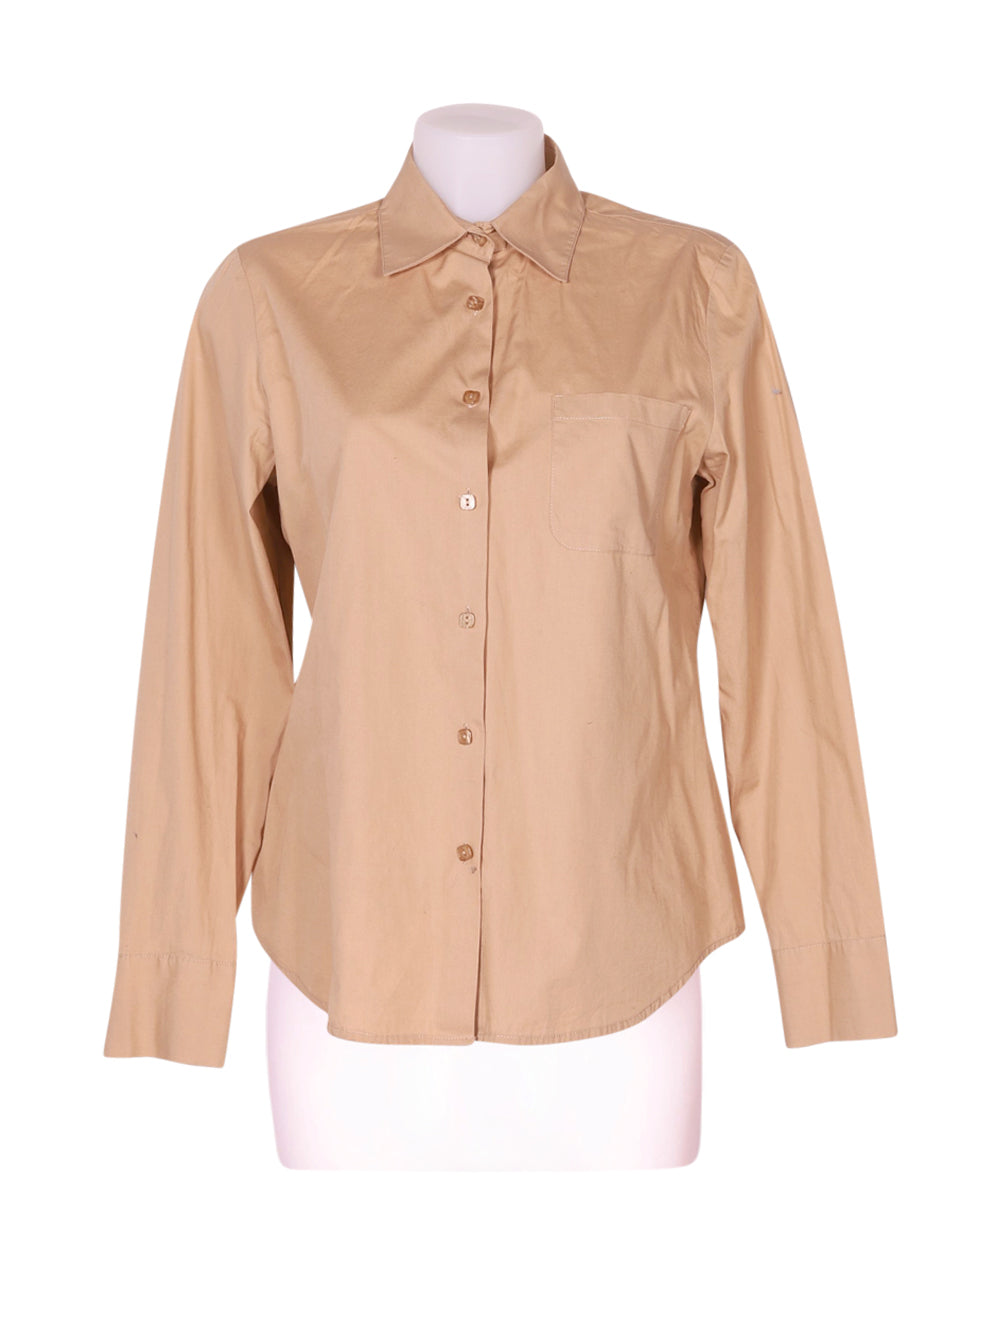 Front photo of Preloved maria rosa Beige Woman's shirt - size 10/M